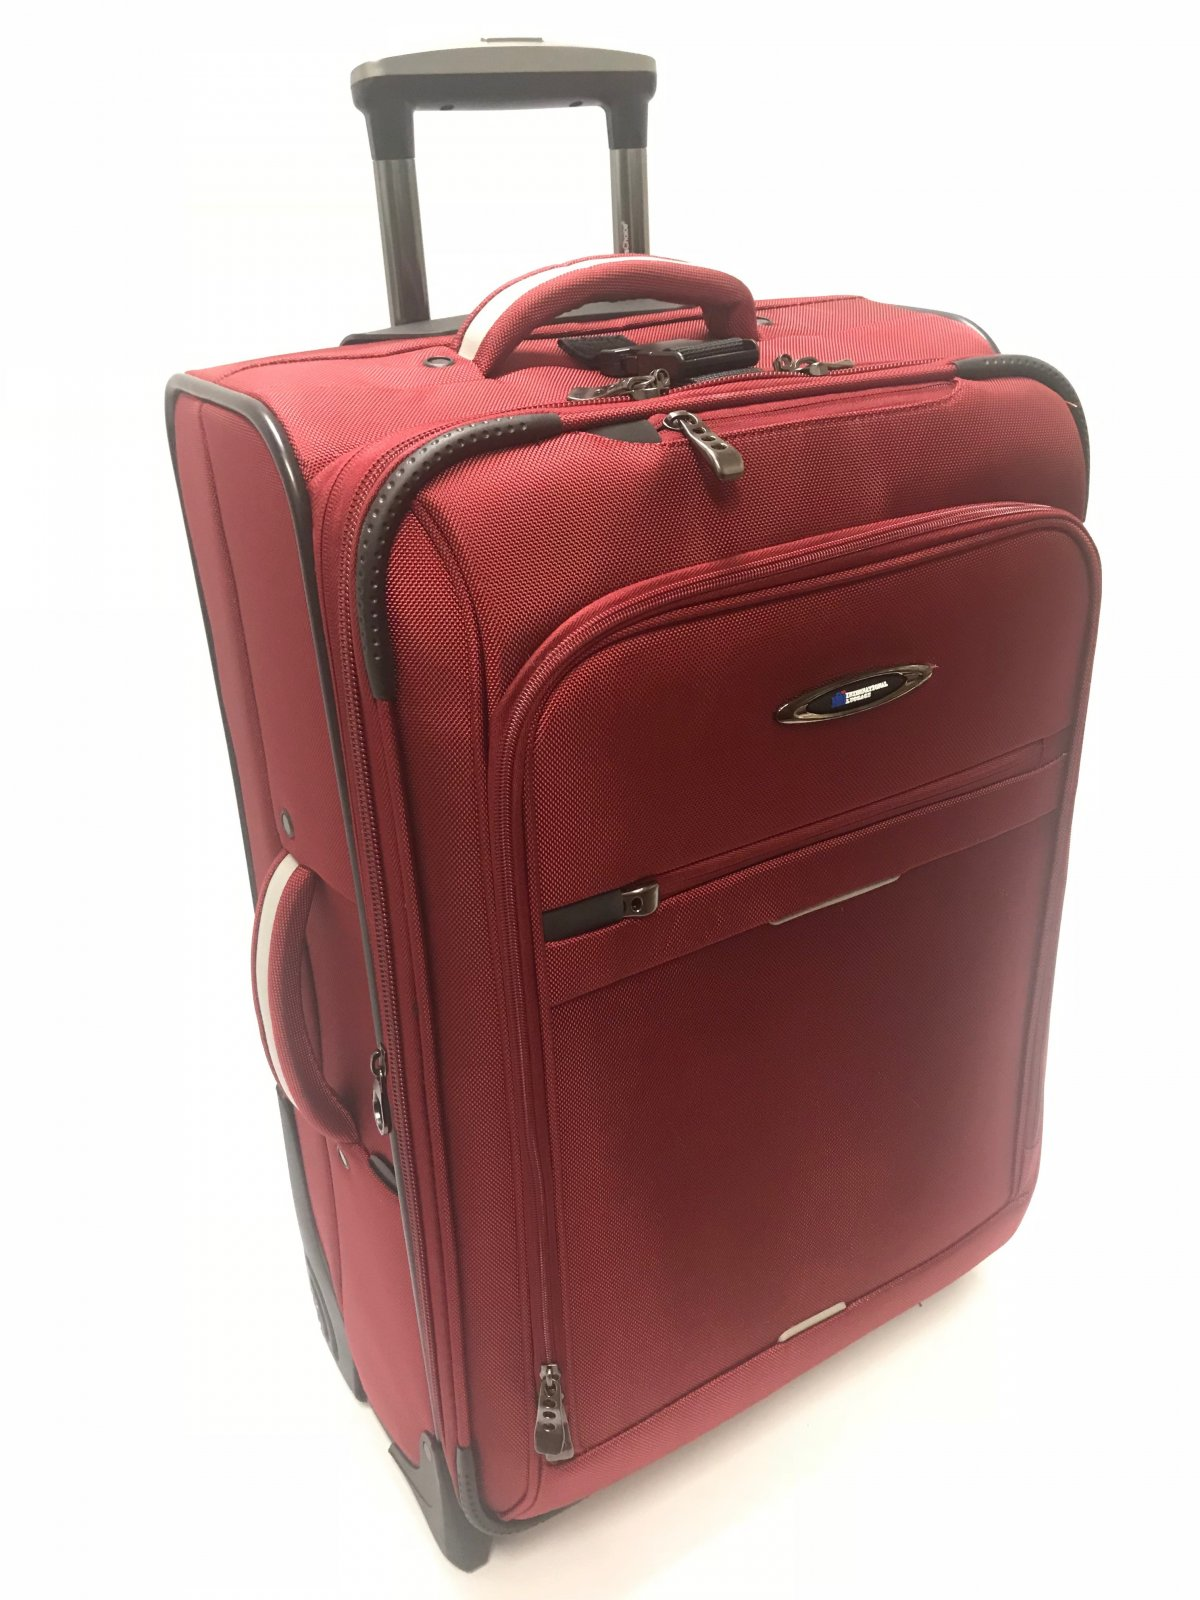 28 Checkable Red Everest Collection with Ballistic Polyester (international travel dimensions) by International Luggage